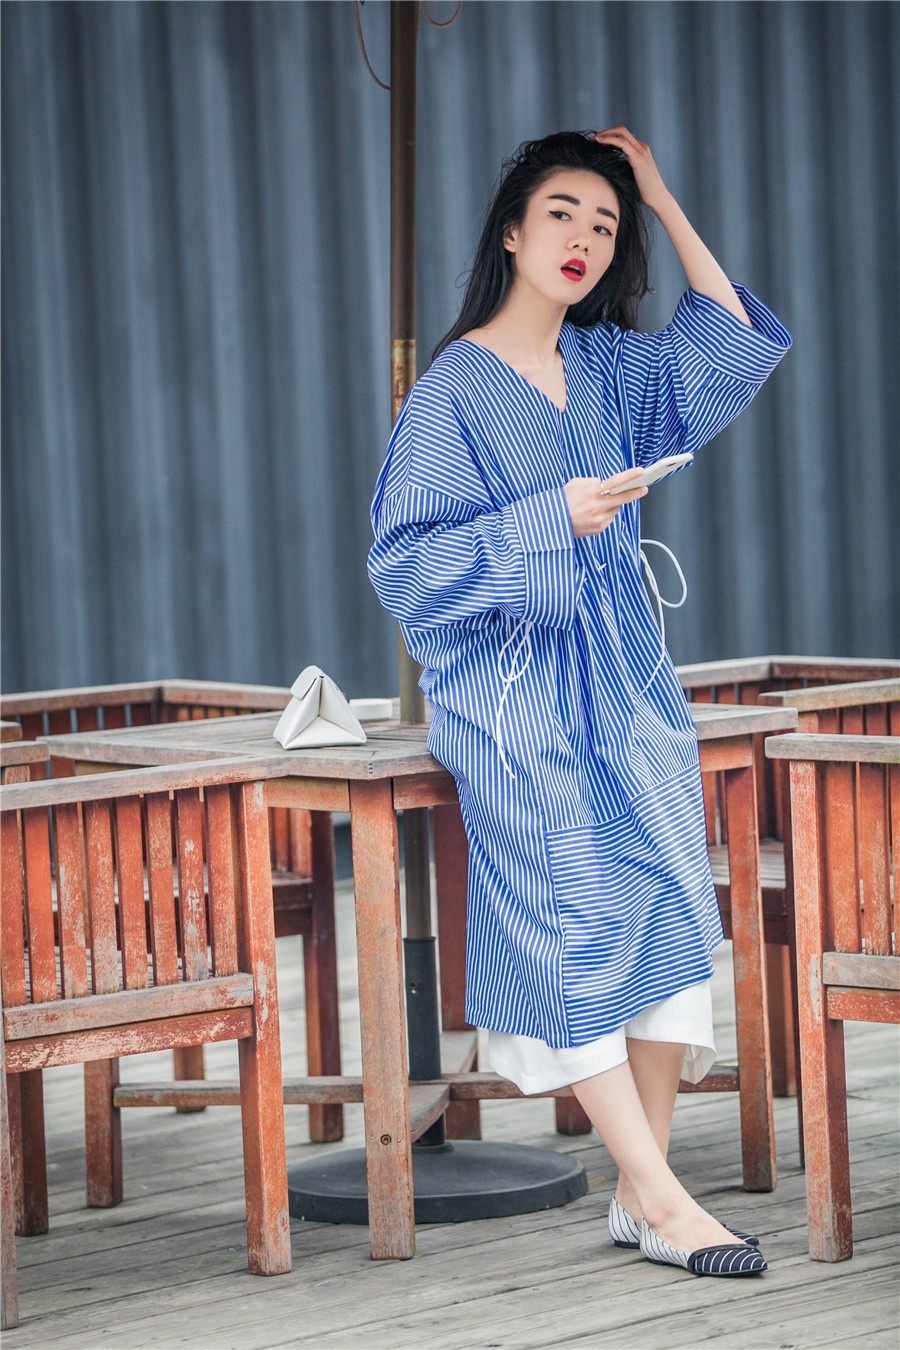 [Ava搭配日记]清爽的明媚夏日 - AvaFoo - Avas Fashion Blog